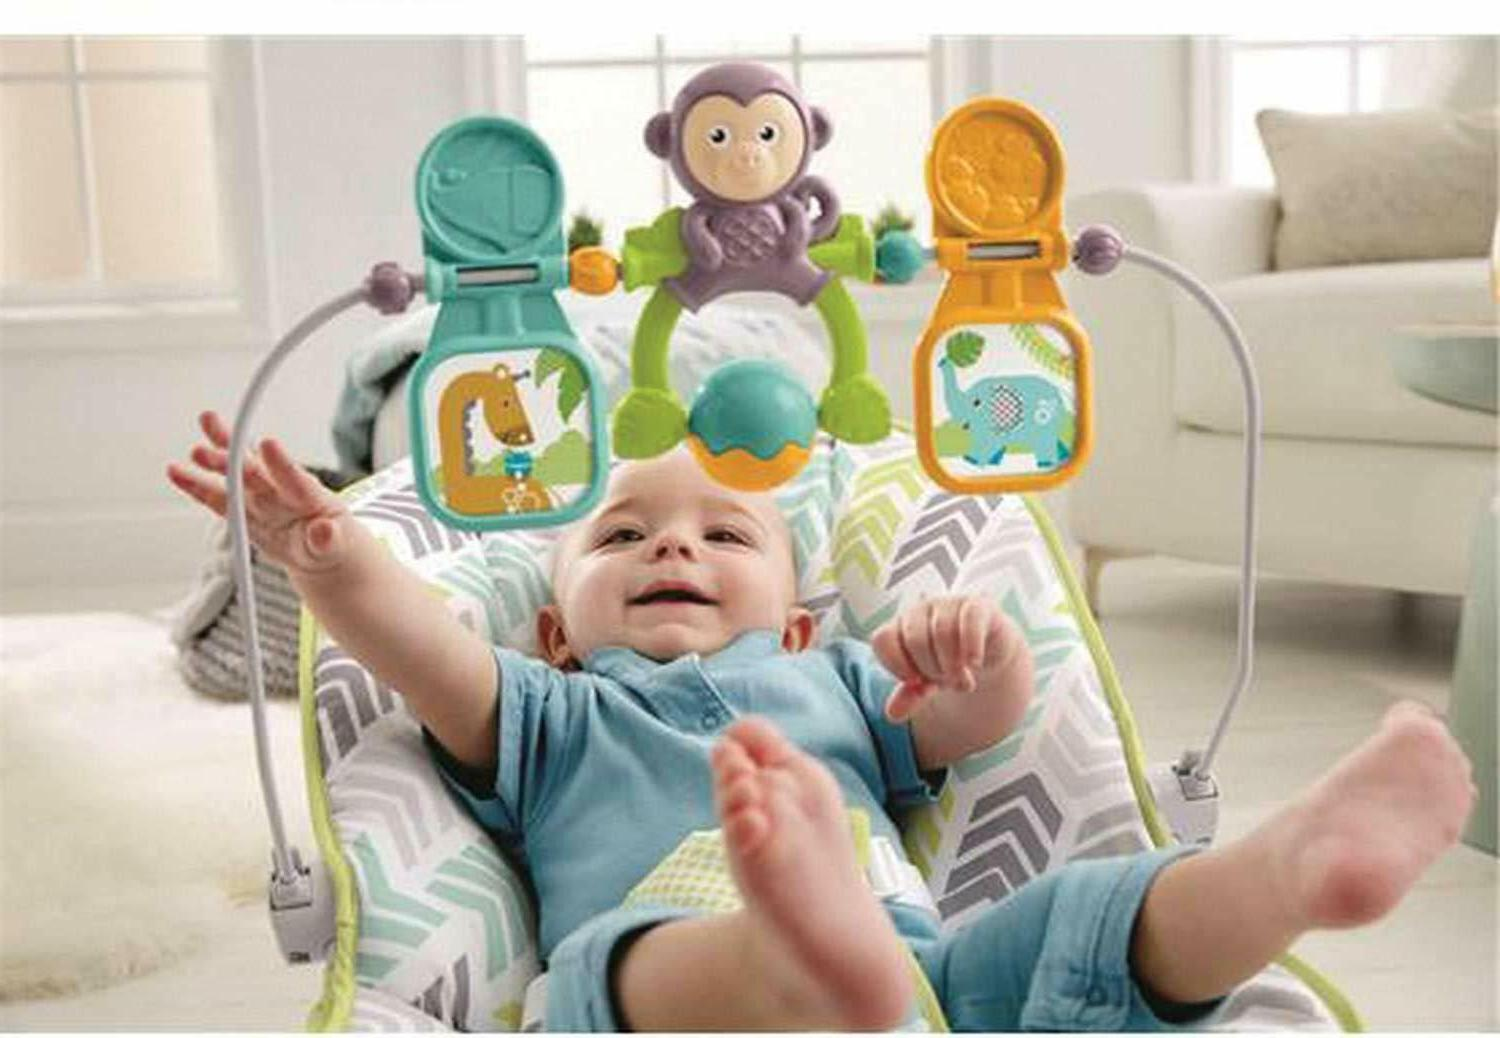 Fisher-Price Green/Blue/Grey